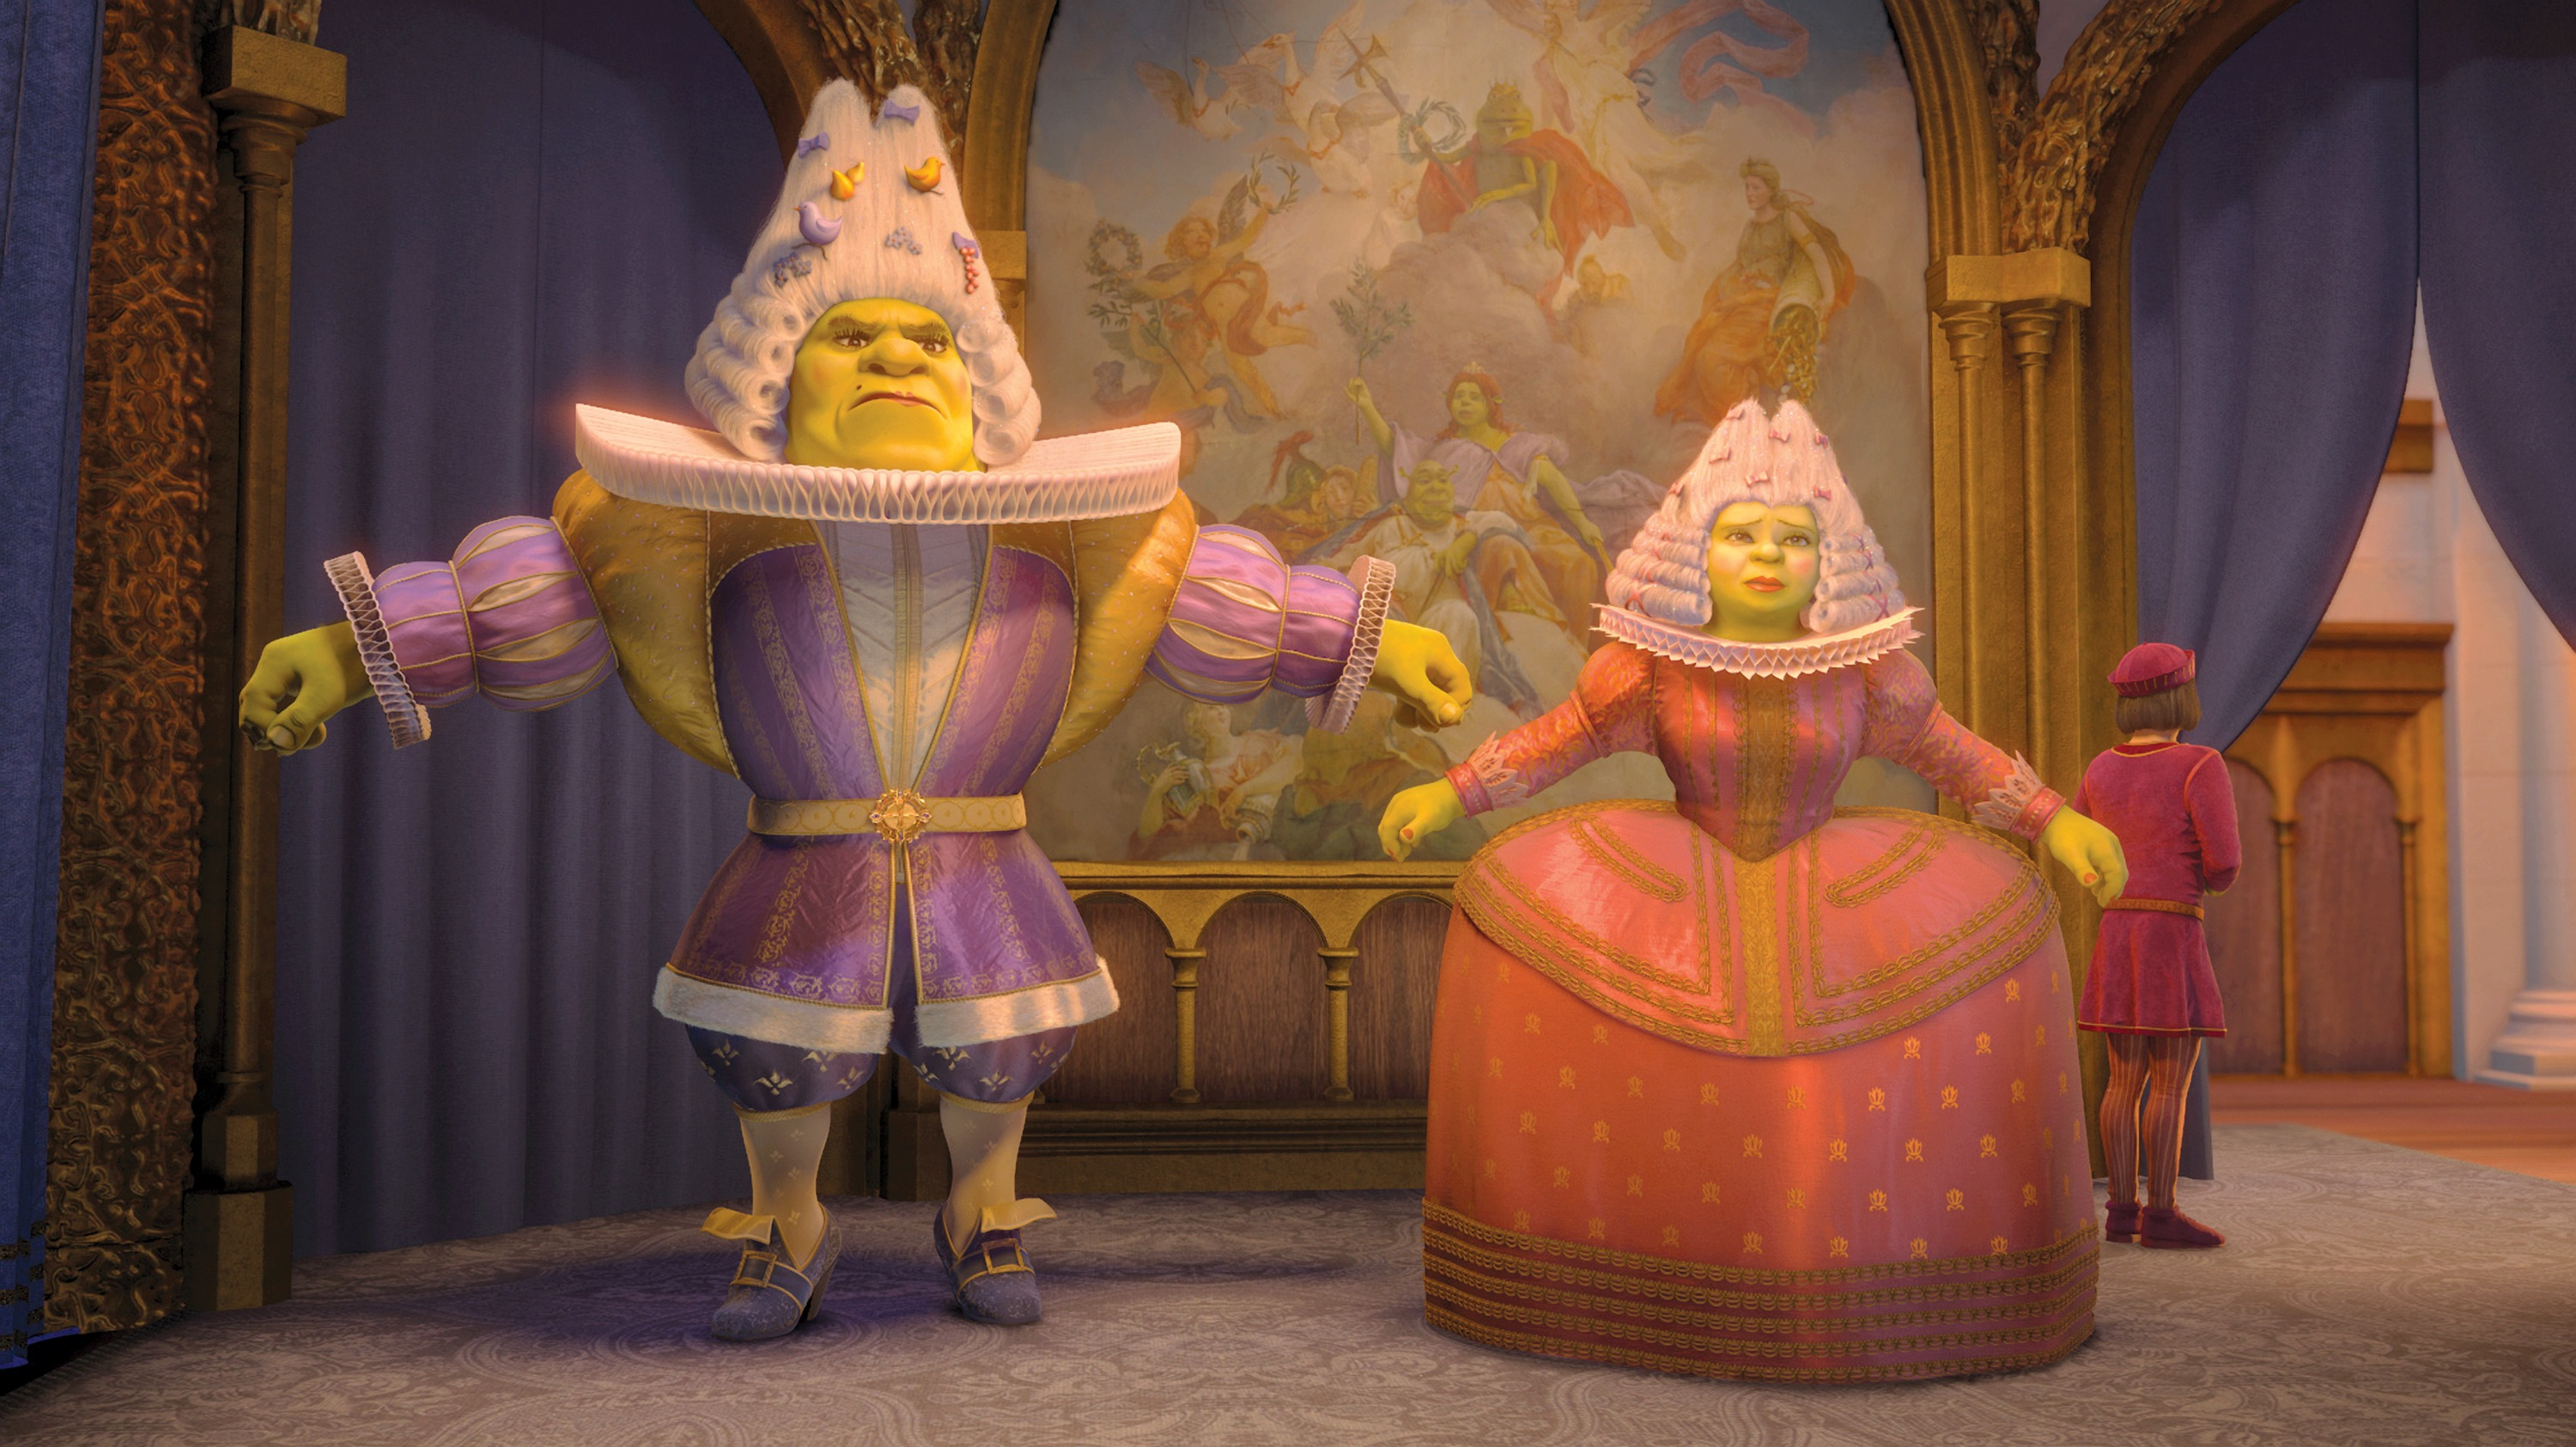 10. Shrek the Third